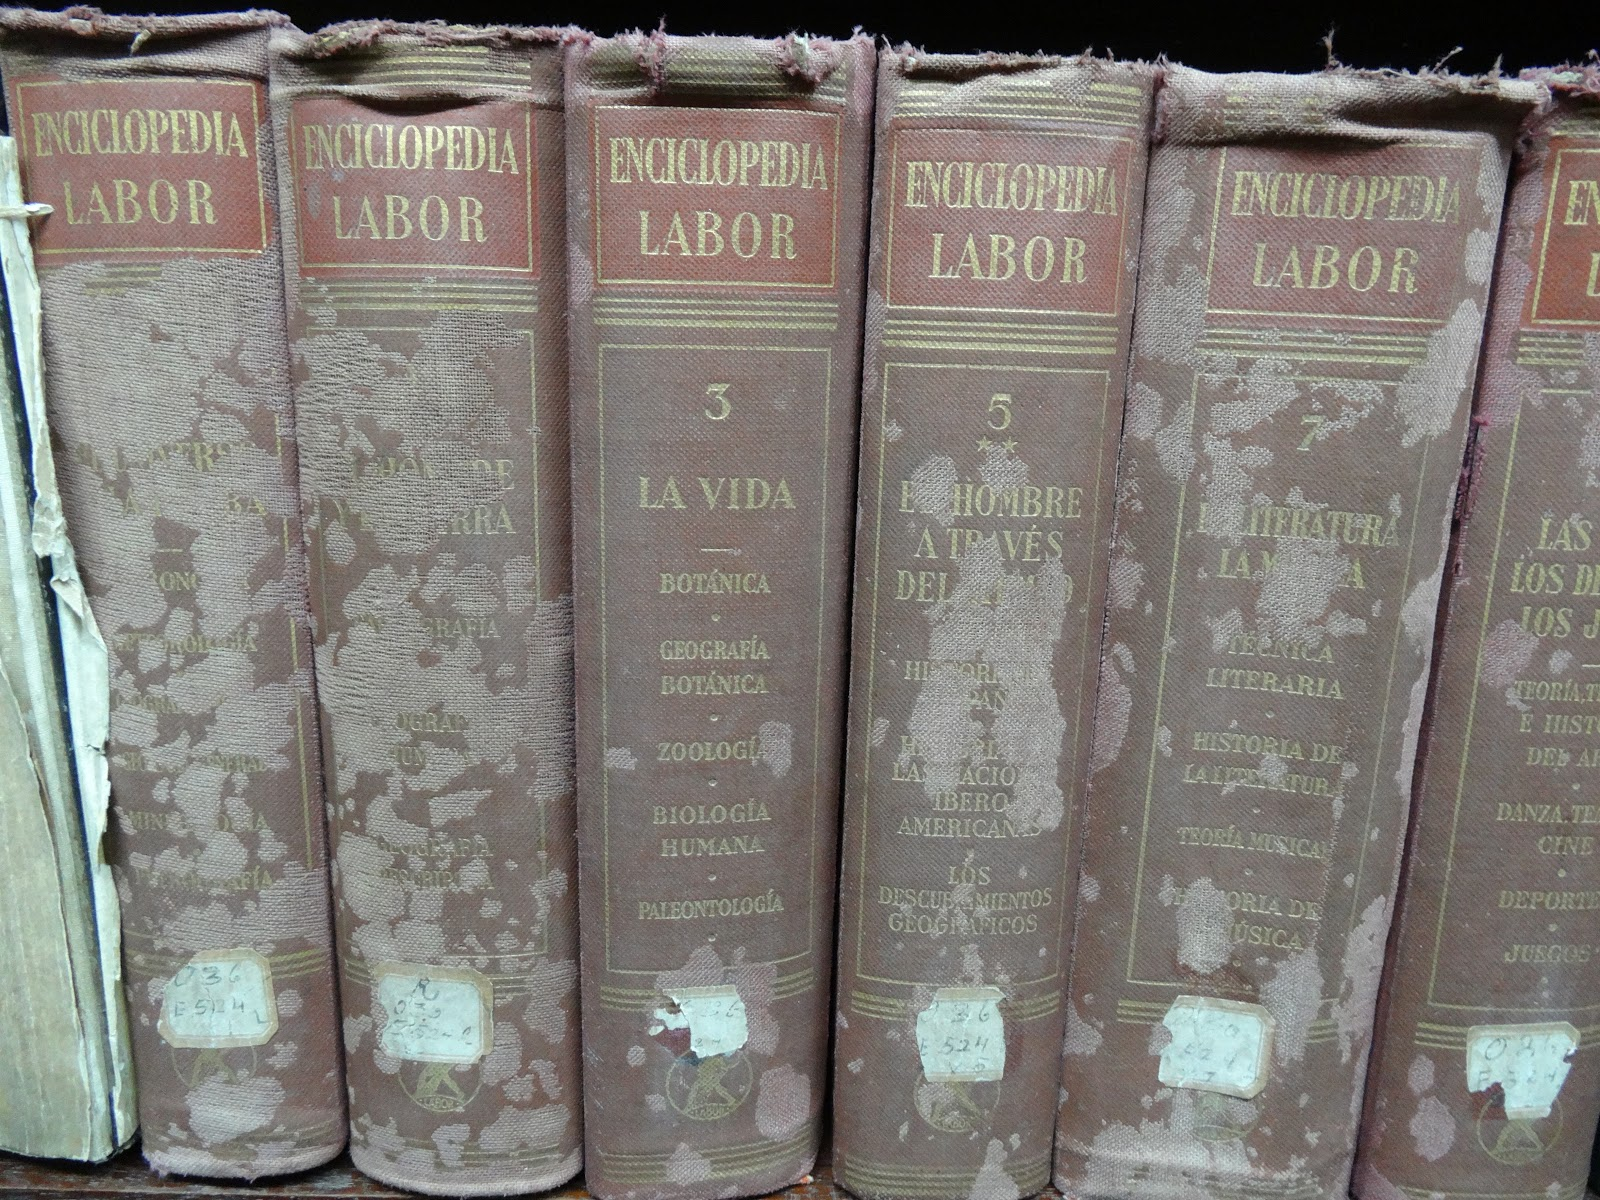 A collection of old books affected by mould and mildew